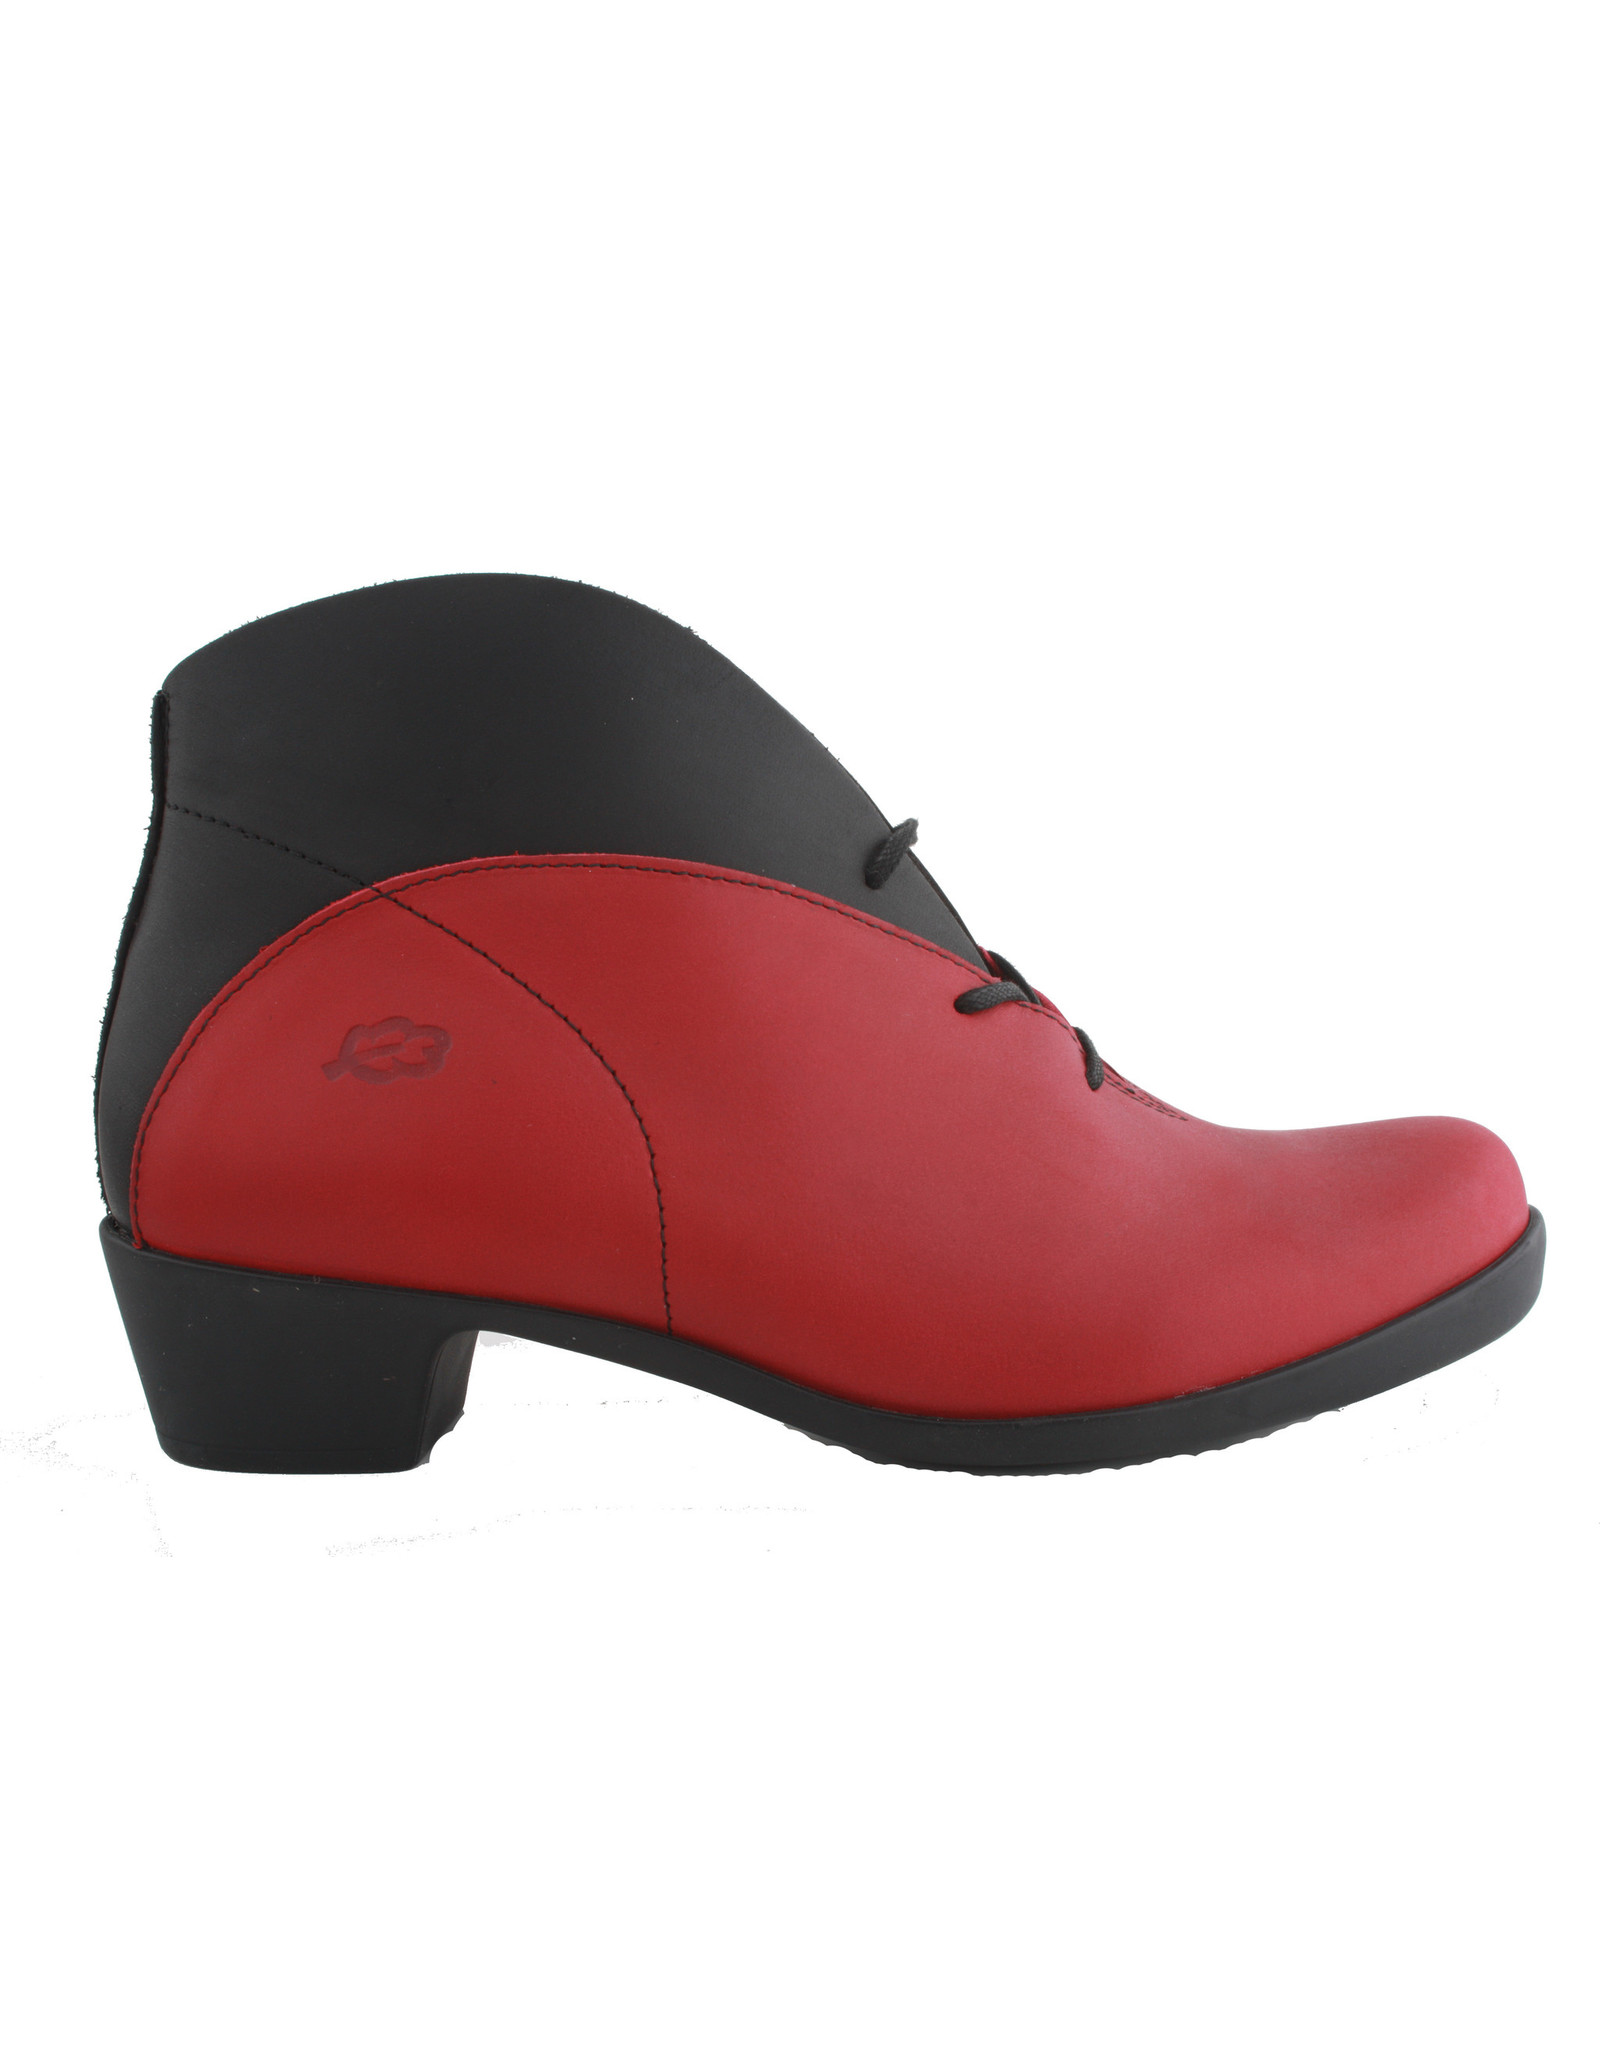 Loints Opera 33972 462/977 red pepper black